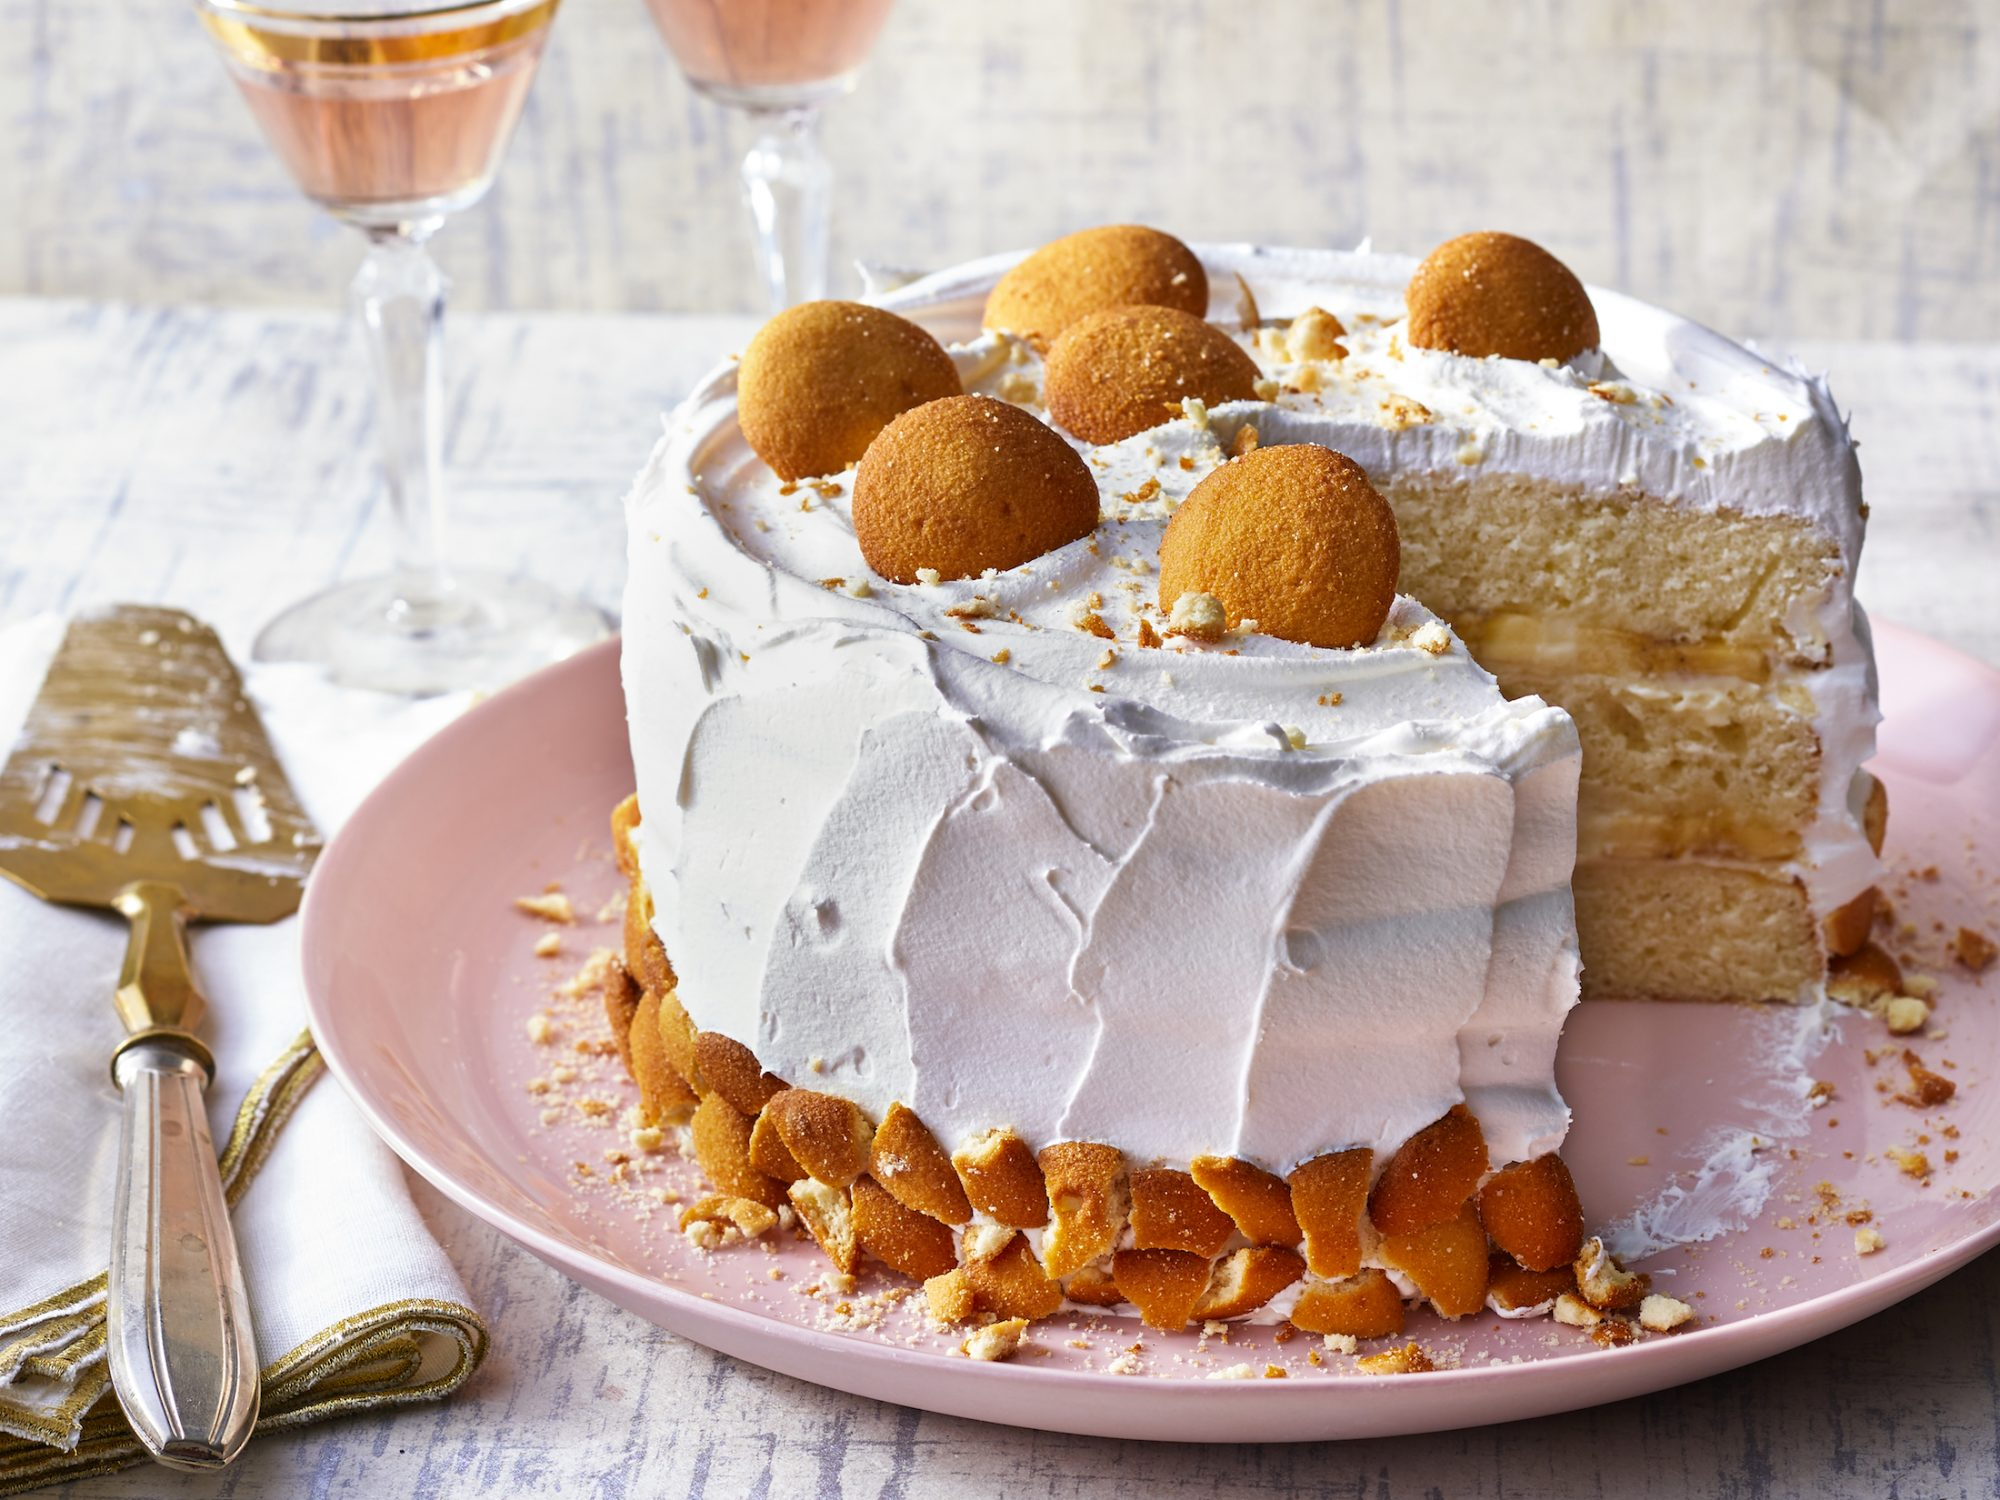 30 Classic Cake Recipes You Need to Add to Your Repertoire